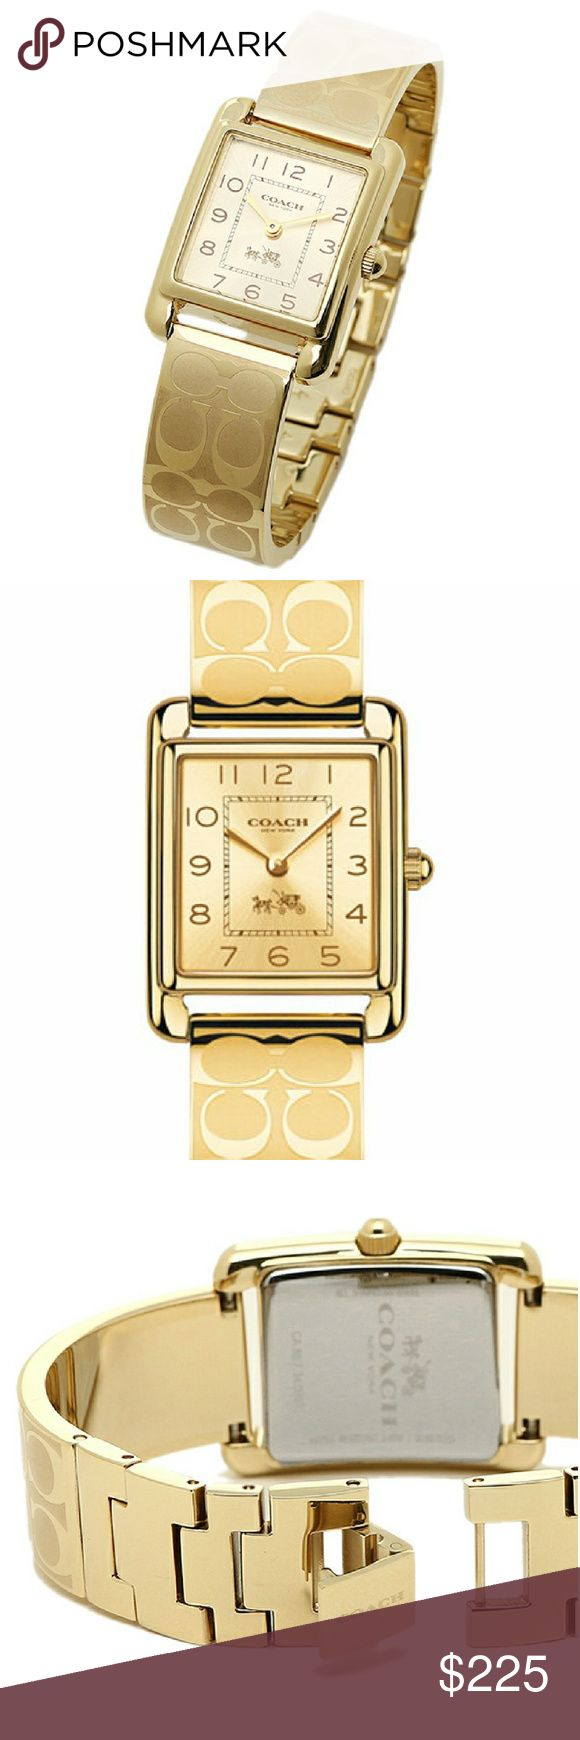 Gold Coach Watch This stylish Gold Coach watch has a signature pattern on the band that adds textural contrast to the golden glow of this classic design. Coach Accessories Watches